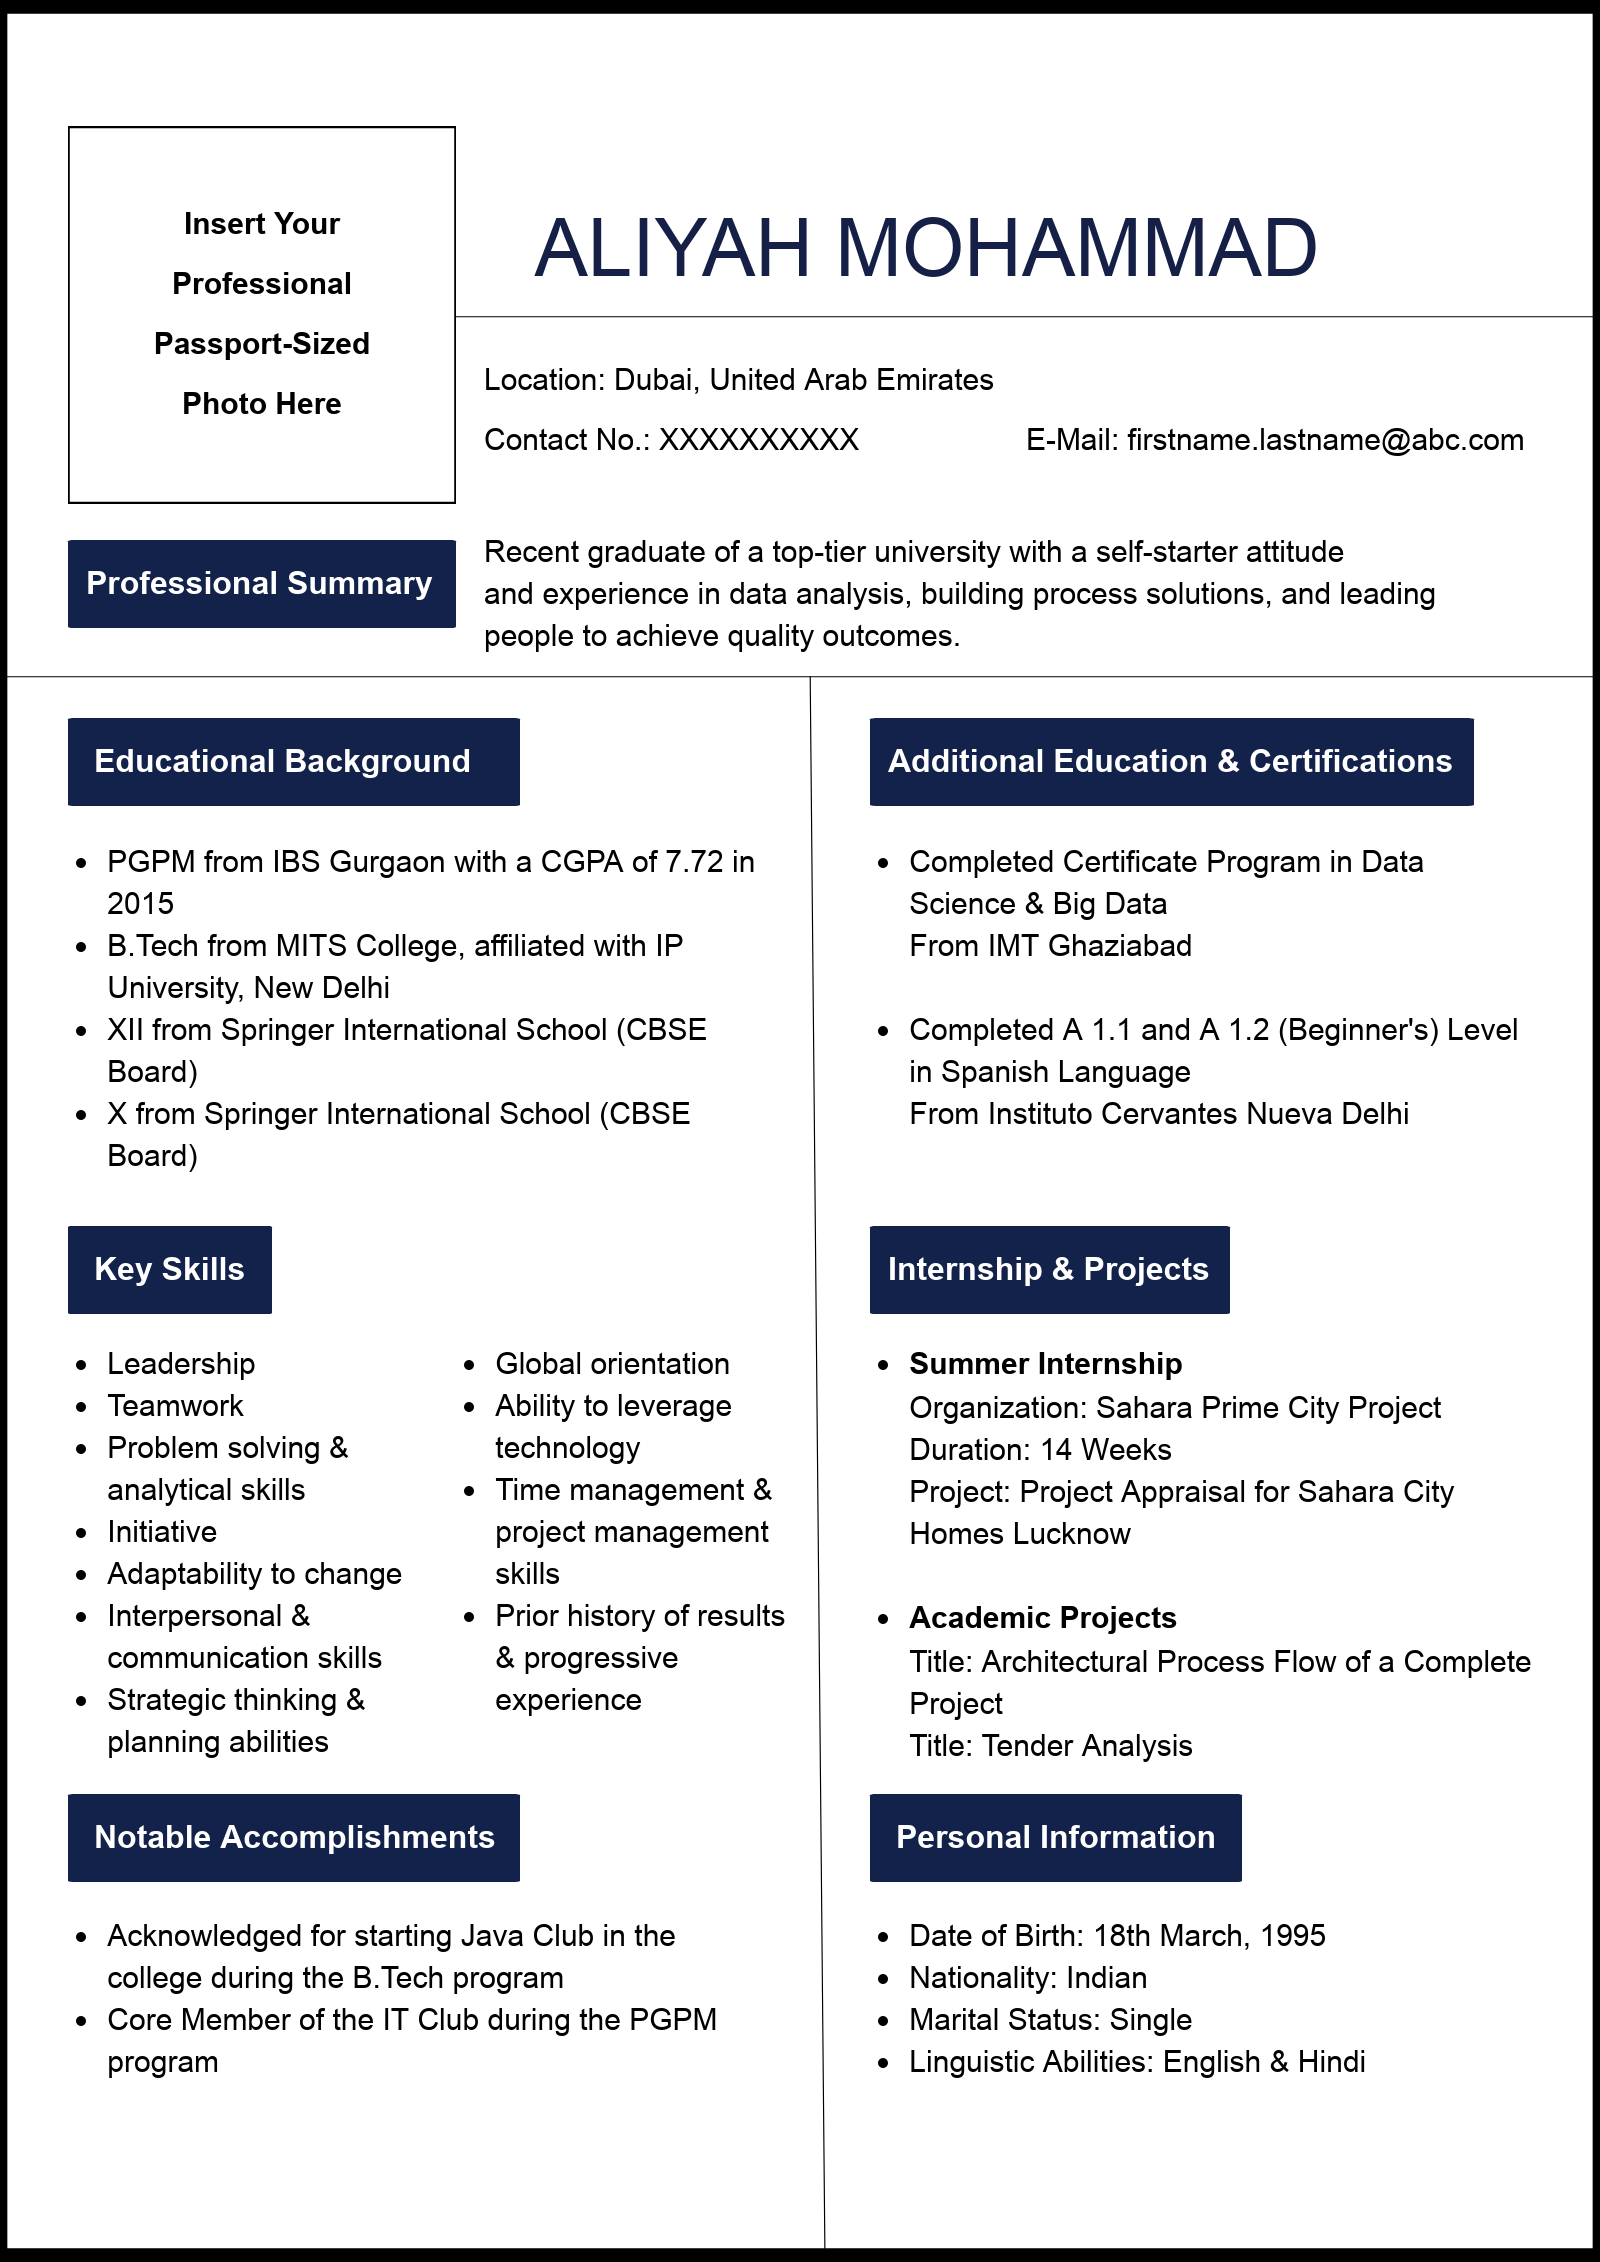 sample resume for marketing assistant fresh graduate